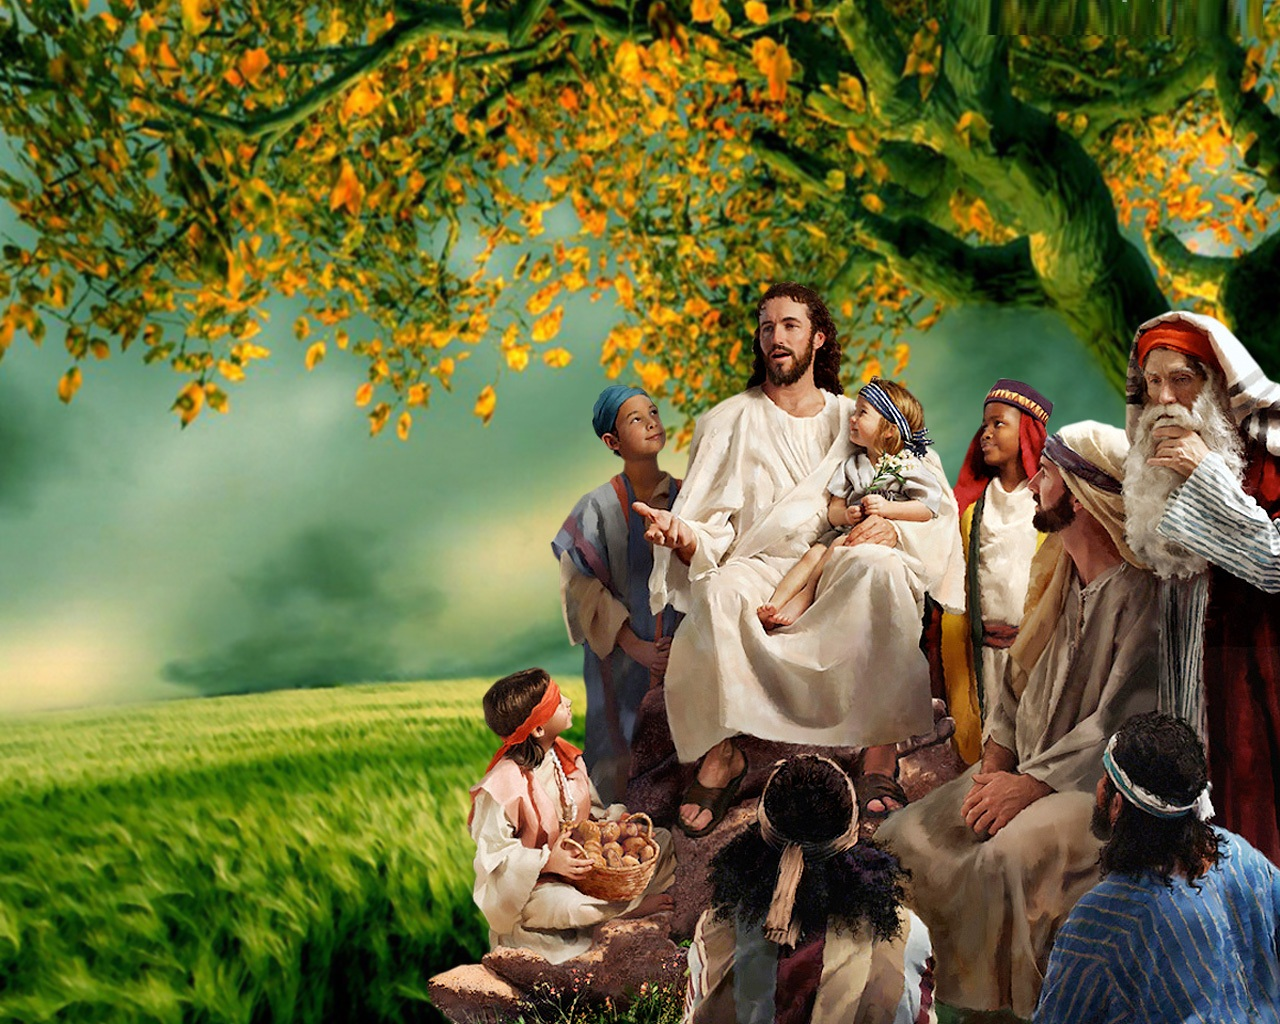 Jesus Hd Wallpaper Widescreen Wallpaper Hd 1080p Widescreen 1280x1024